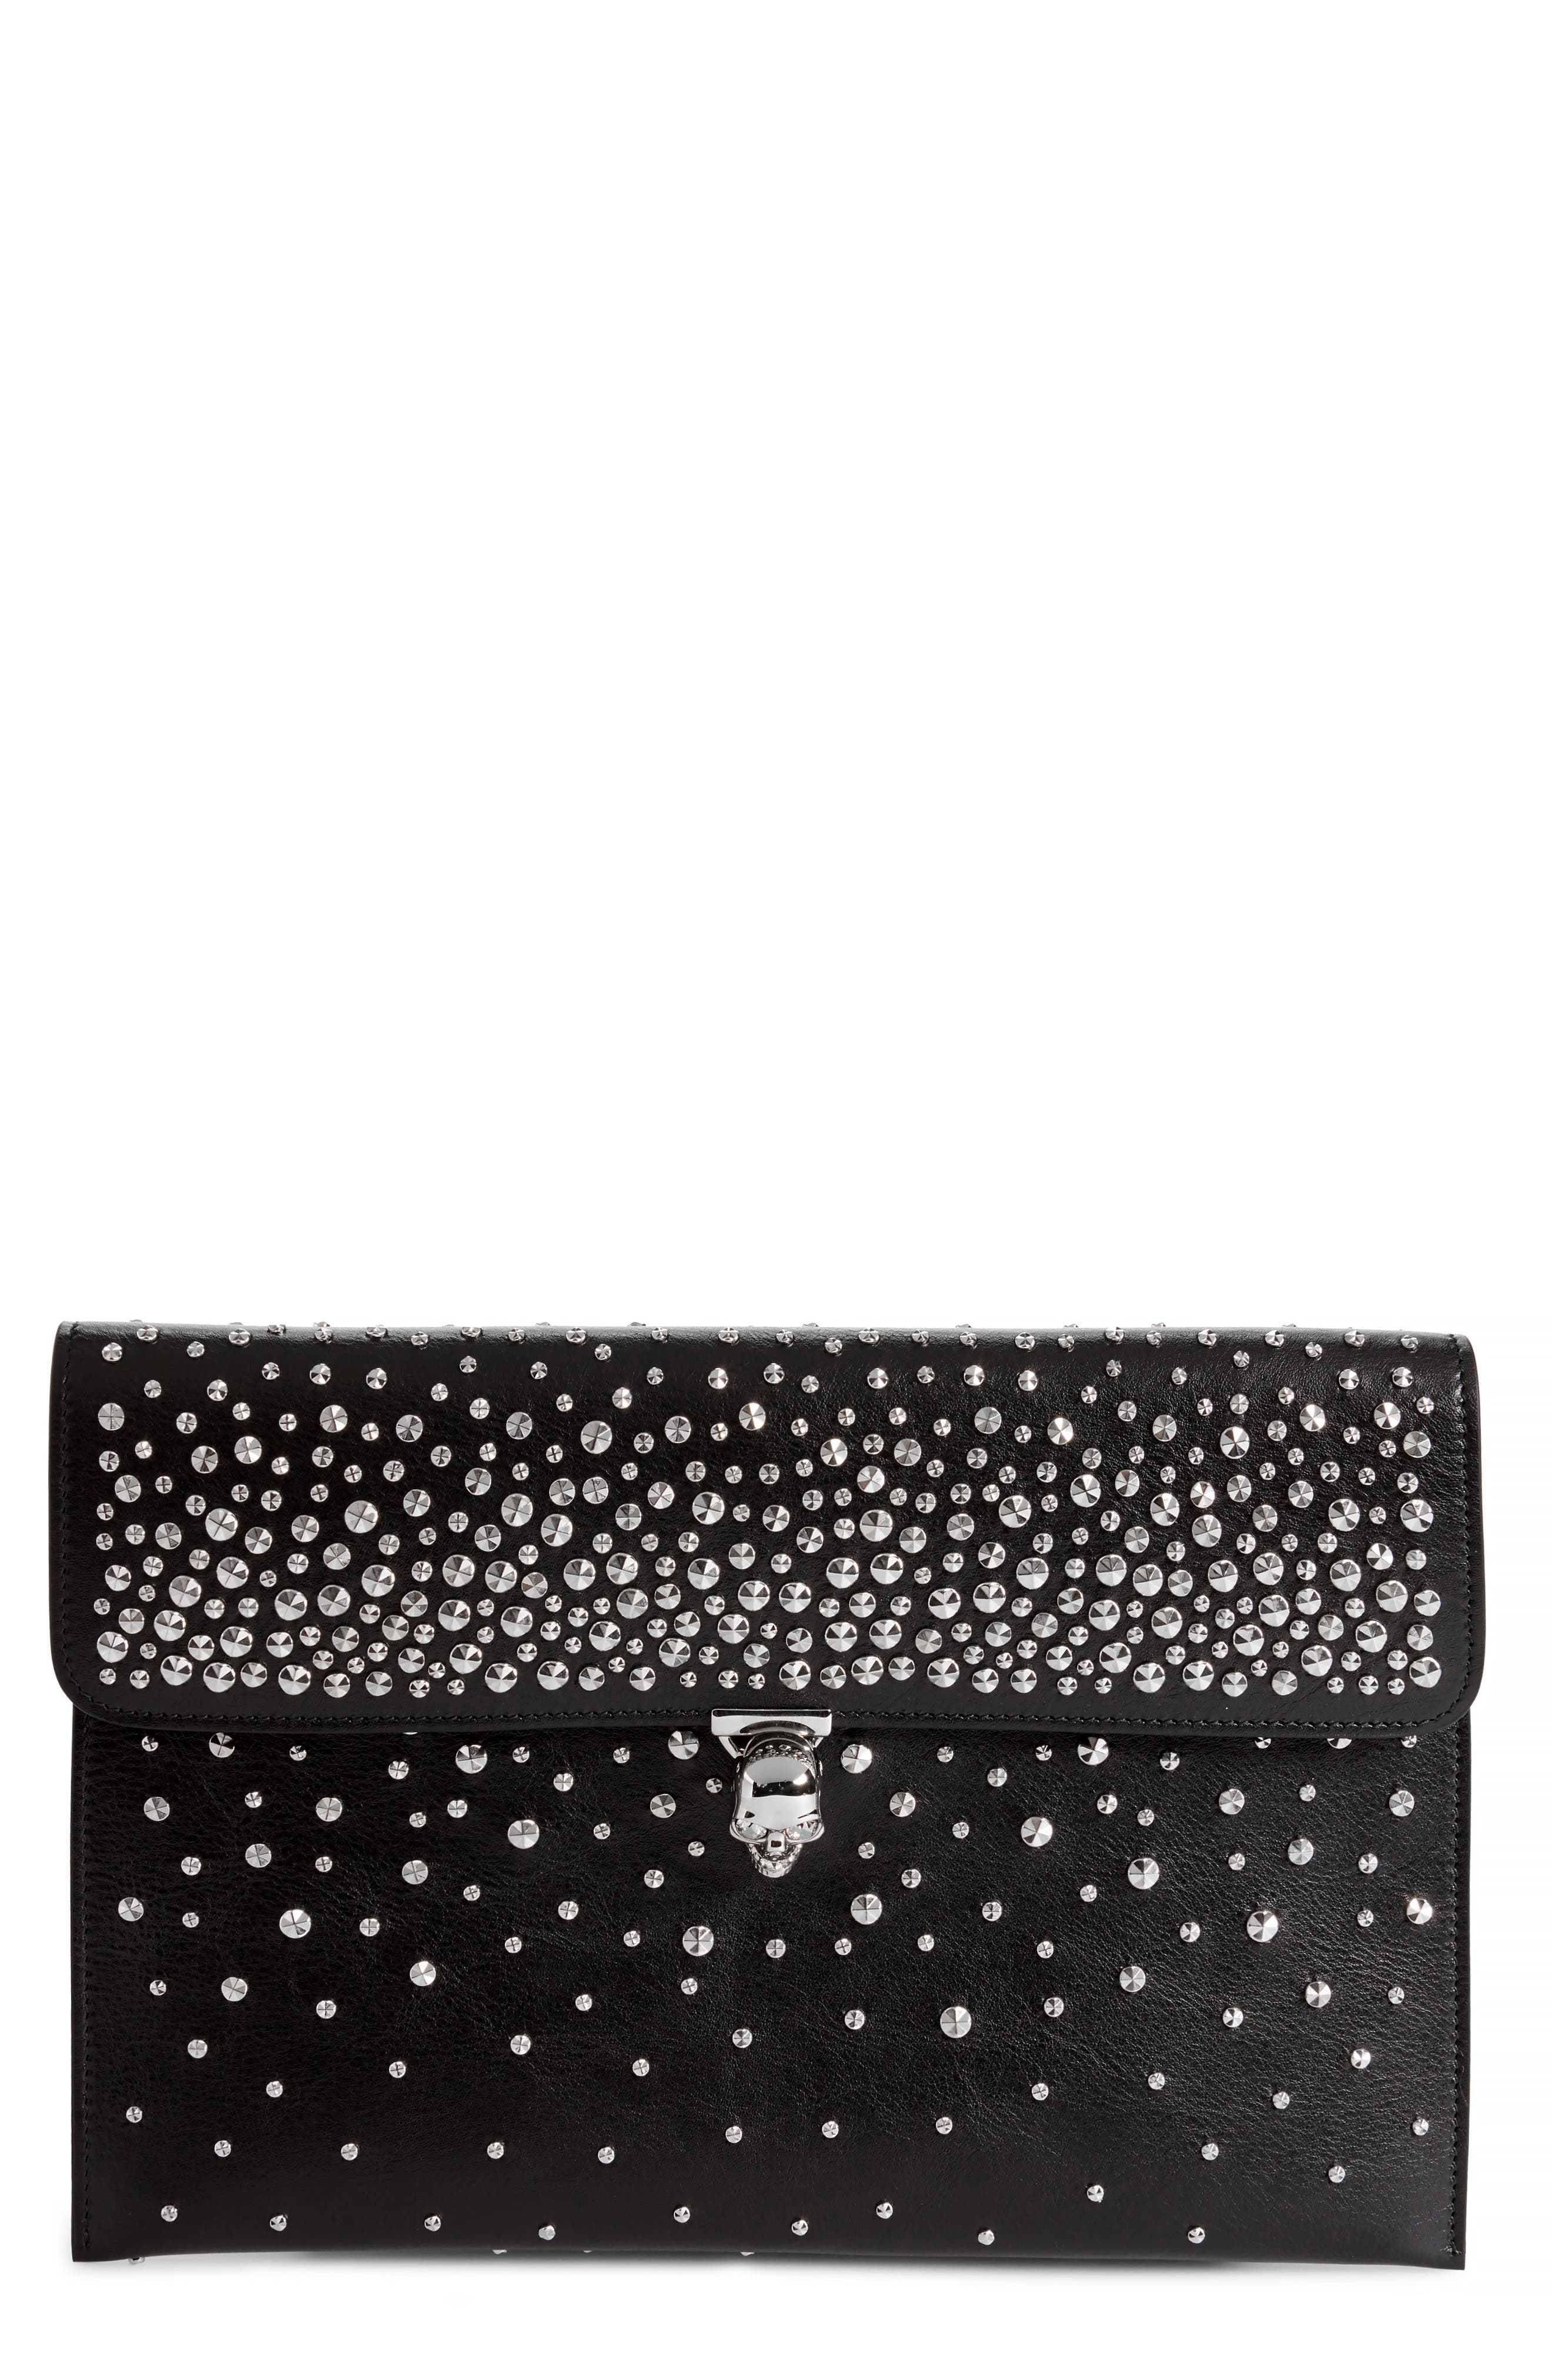 Main Image - Alexander McQueen Studded Skull Closure Leather Envelope Clutch